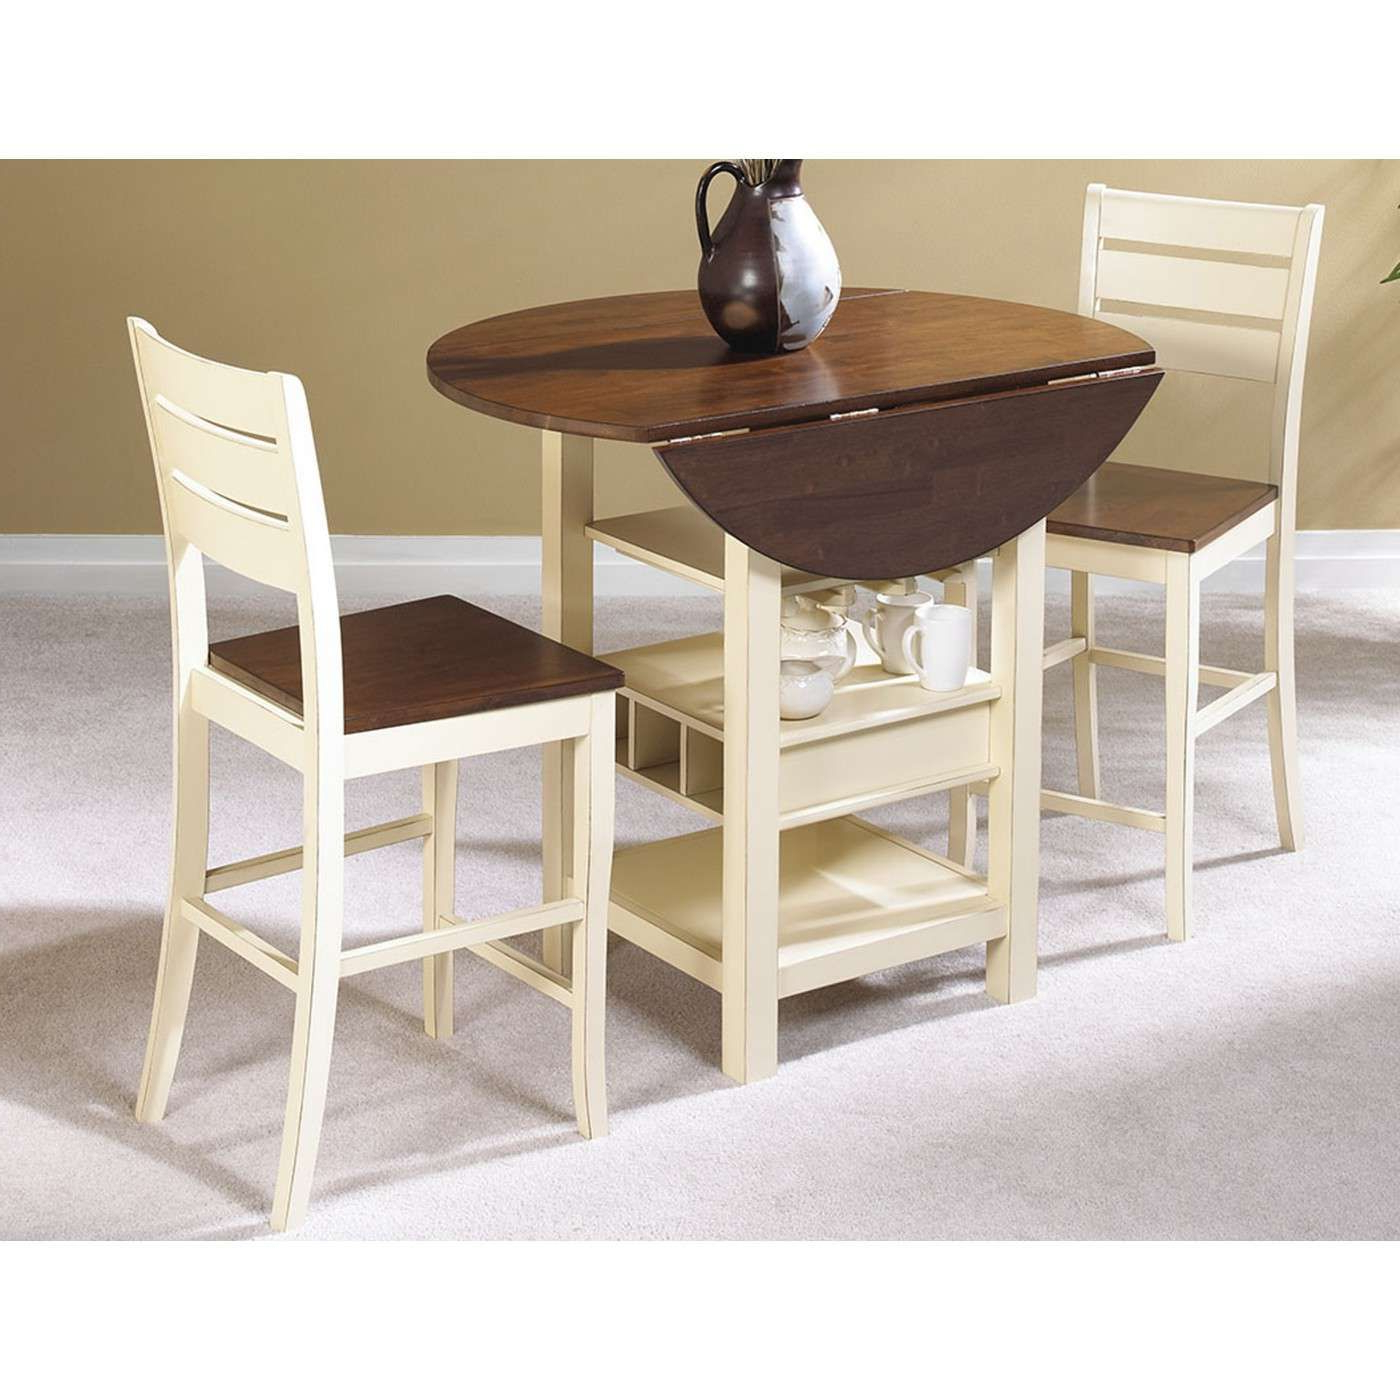 Pub Throughout Well Known Transitional 3 Piece Drop Leaf Casual Dining Tables Set (View 18 of 30)